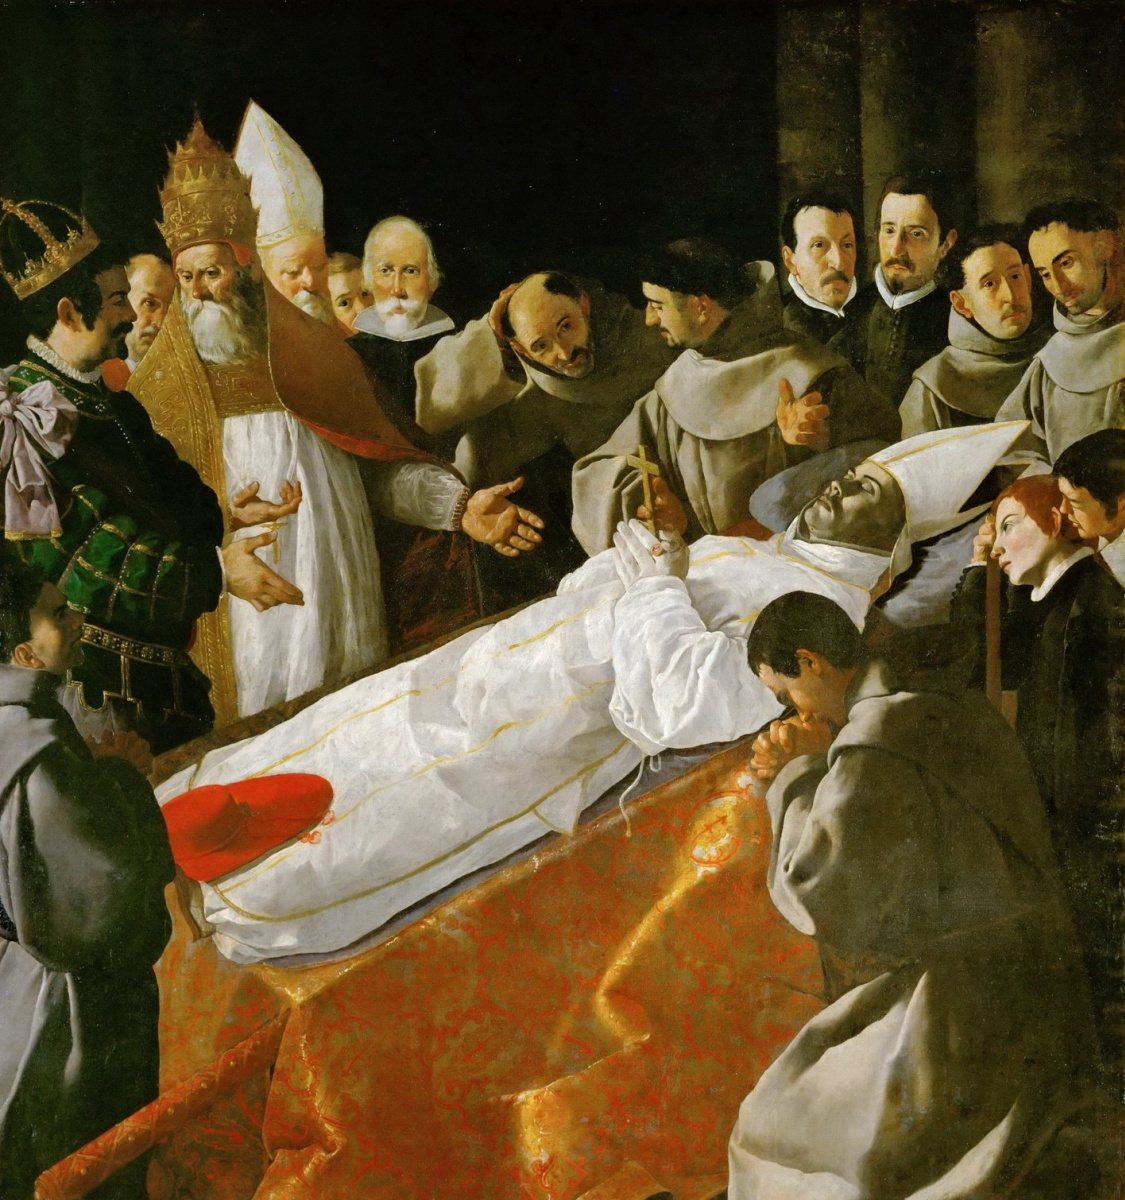 Francisco de Zurbaran. The burial of St. Bonaventure in the presence of Pope Gregory X and the king Jaime I of Aragon I